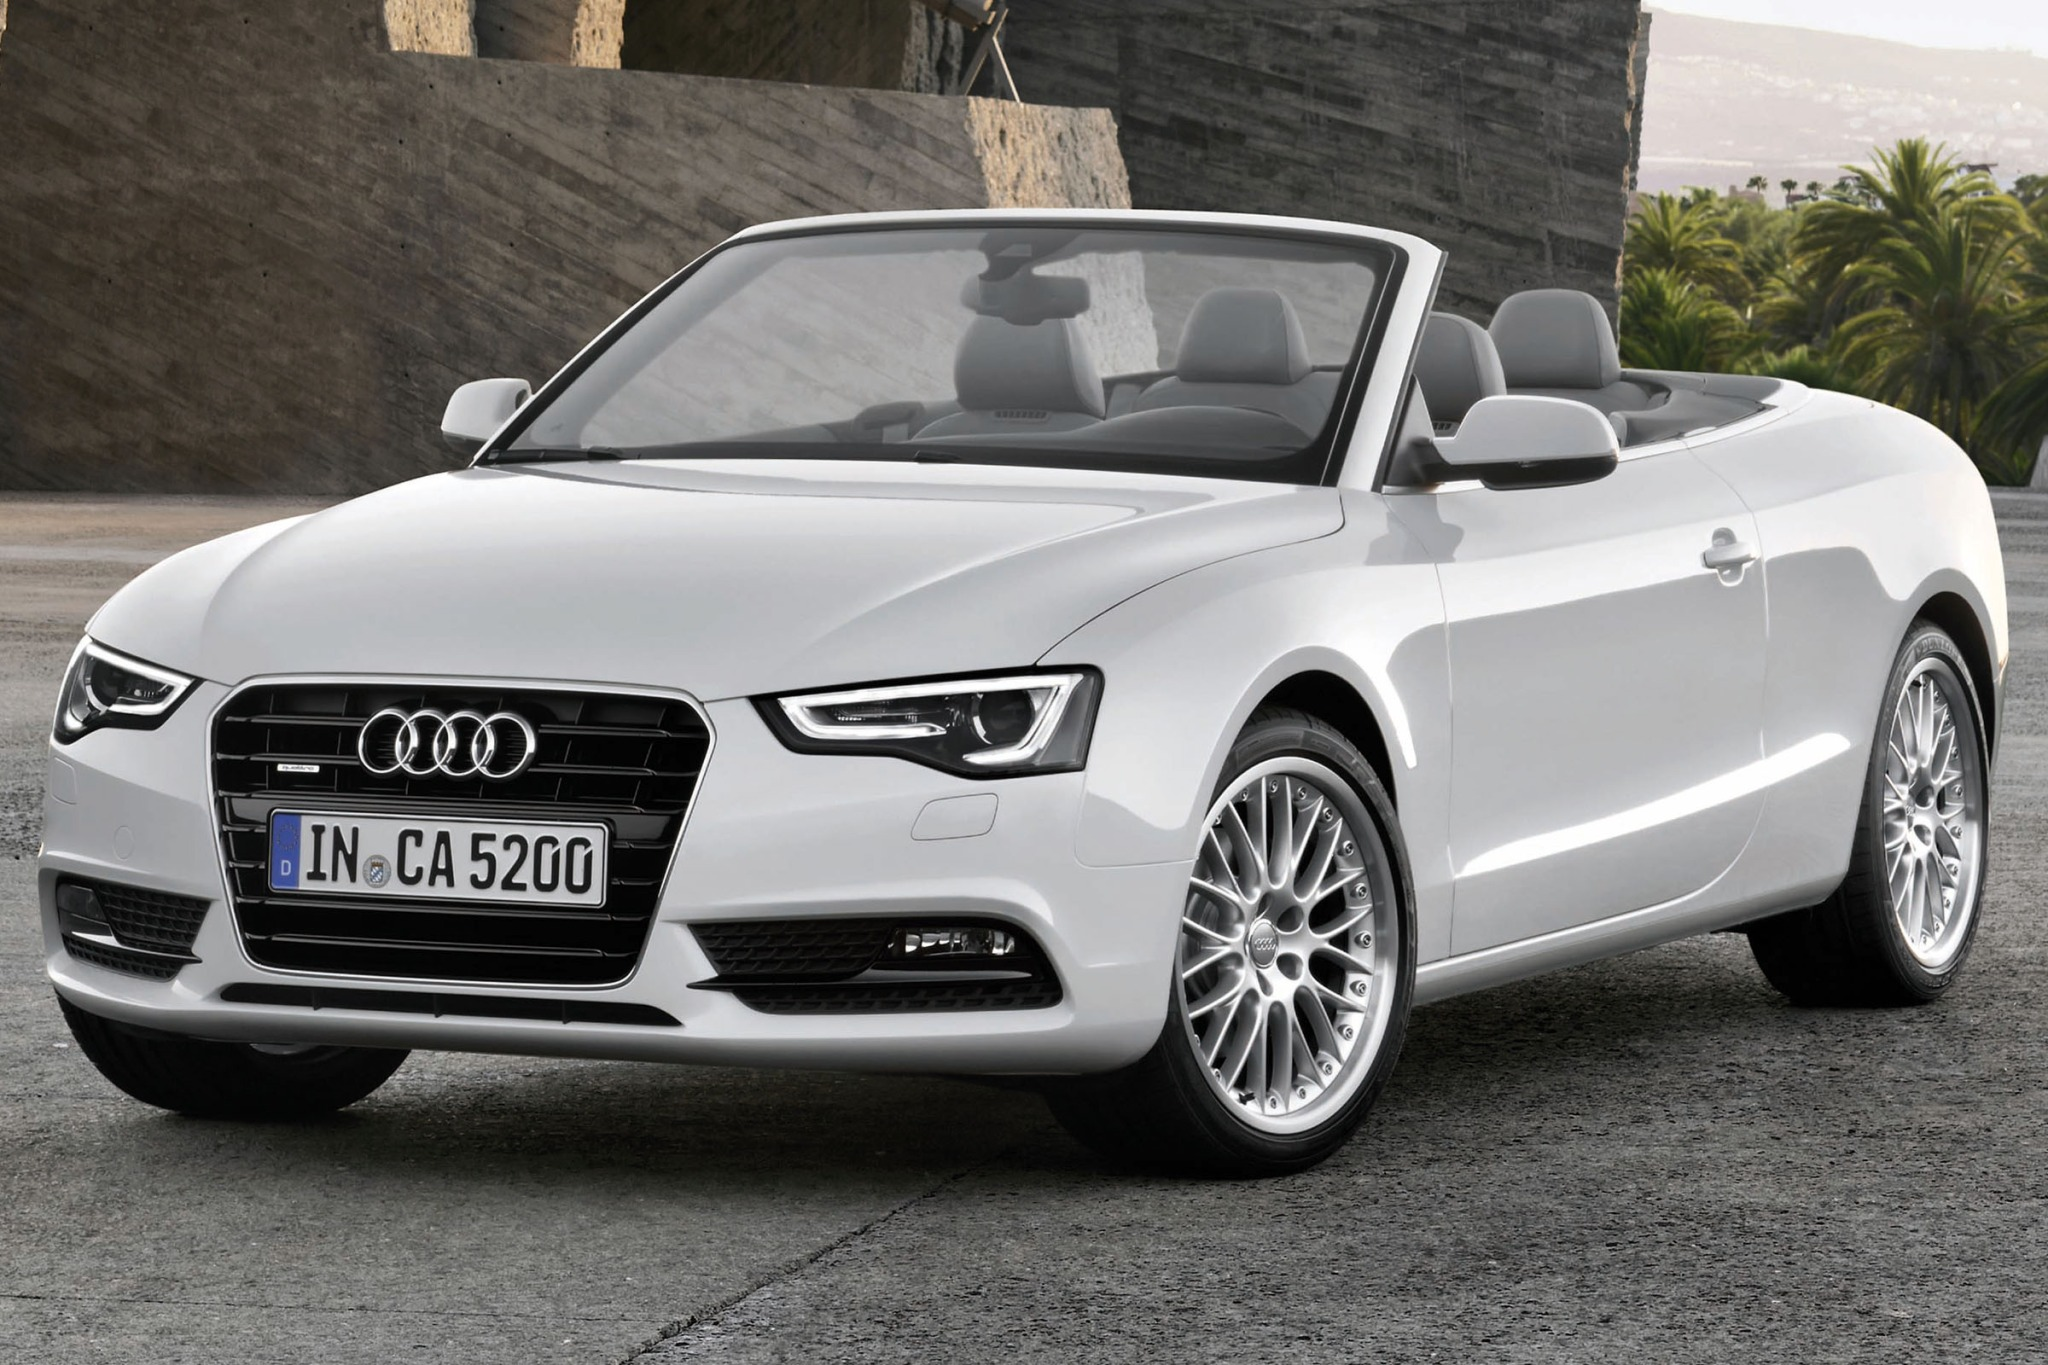 htm used audi olympicnocpins pictures sale and cars convertible coupe for car cost cabriolet reviews new best info